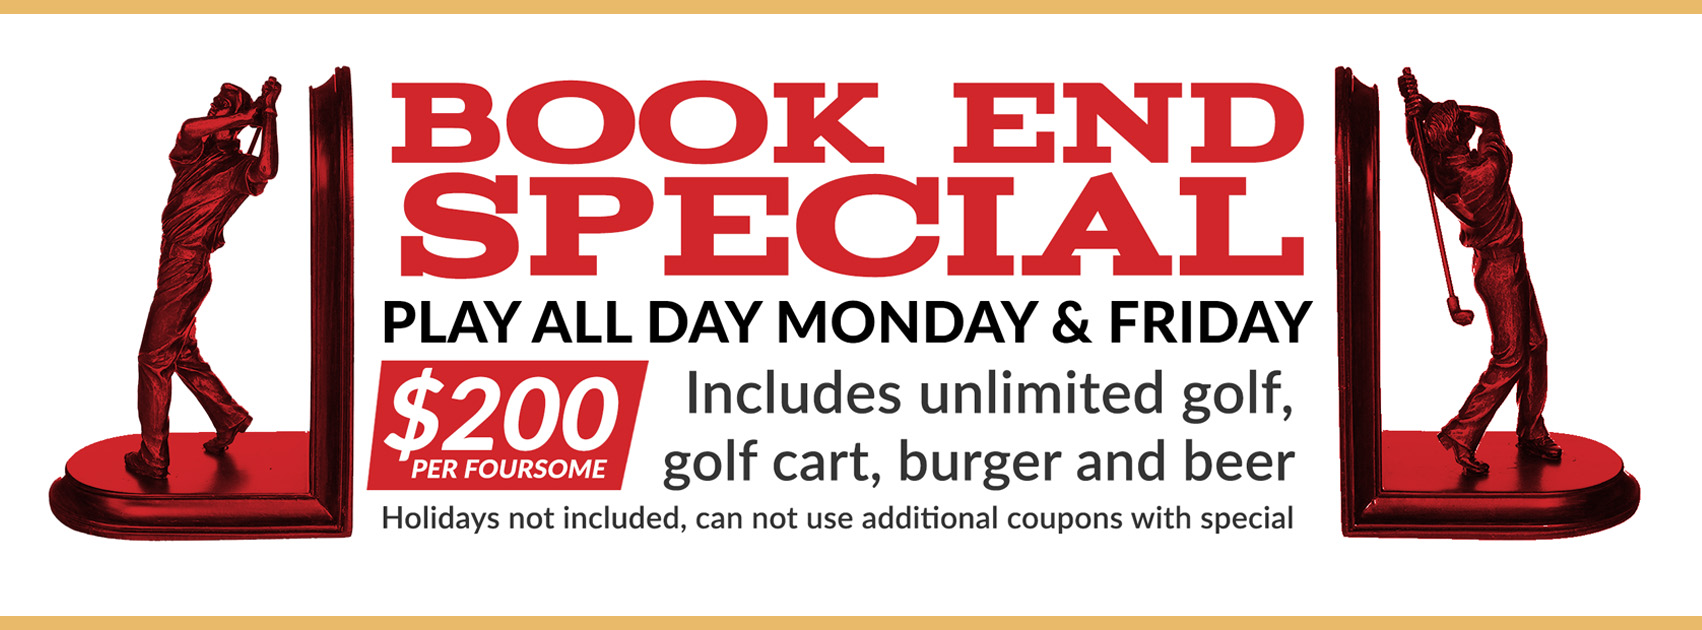 Book End Special. Play all day Monday & Friday. Includes unlimited golf, golf cart, burger and beer. $200 per foursome. Holidays not included, can not use additional coupons with special.